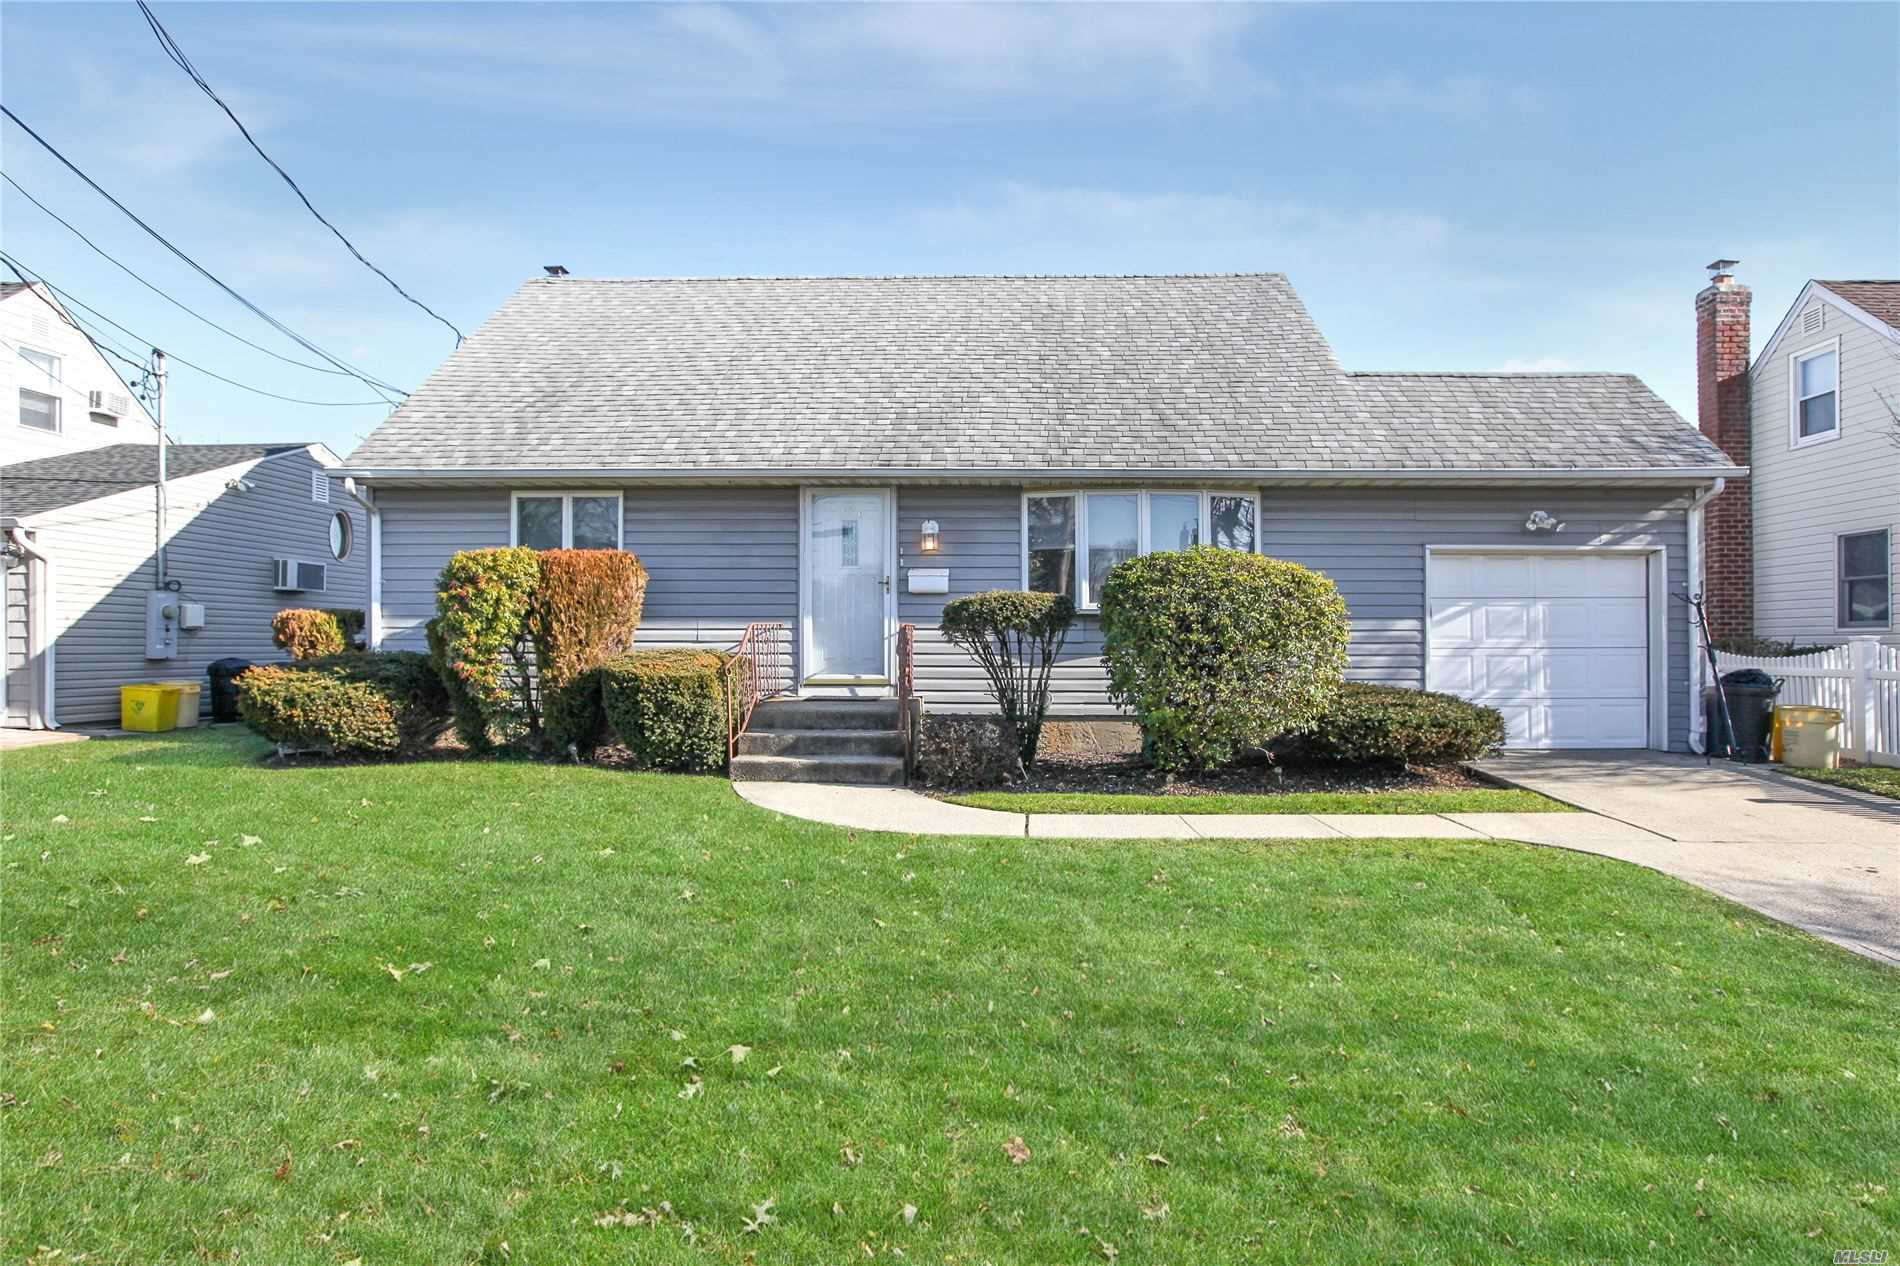 154 E Zoranne Dr - Farmingdale, New York